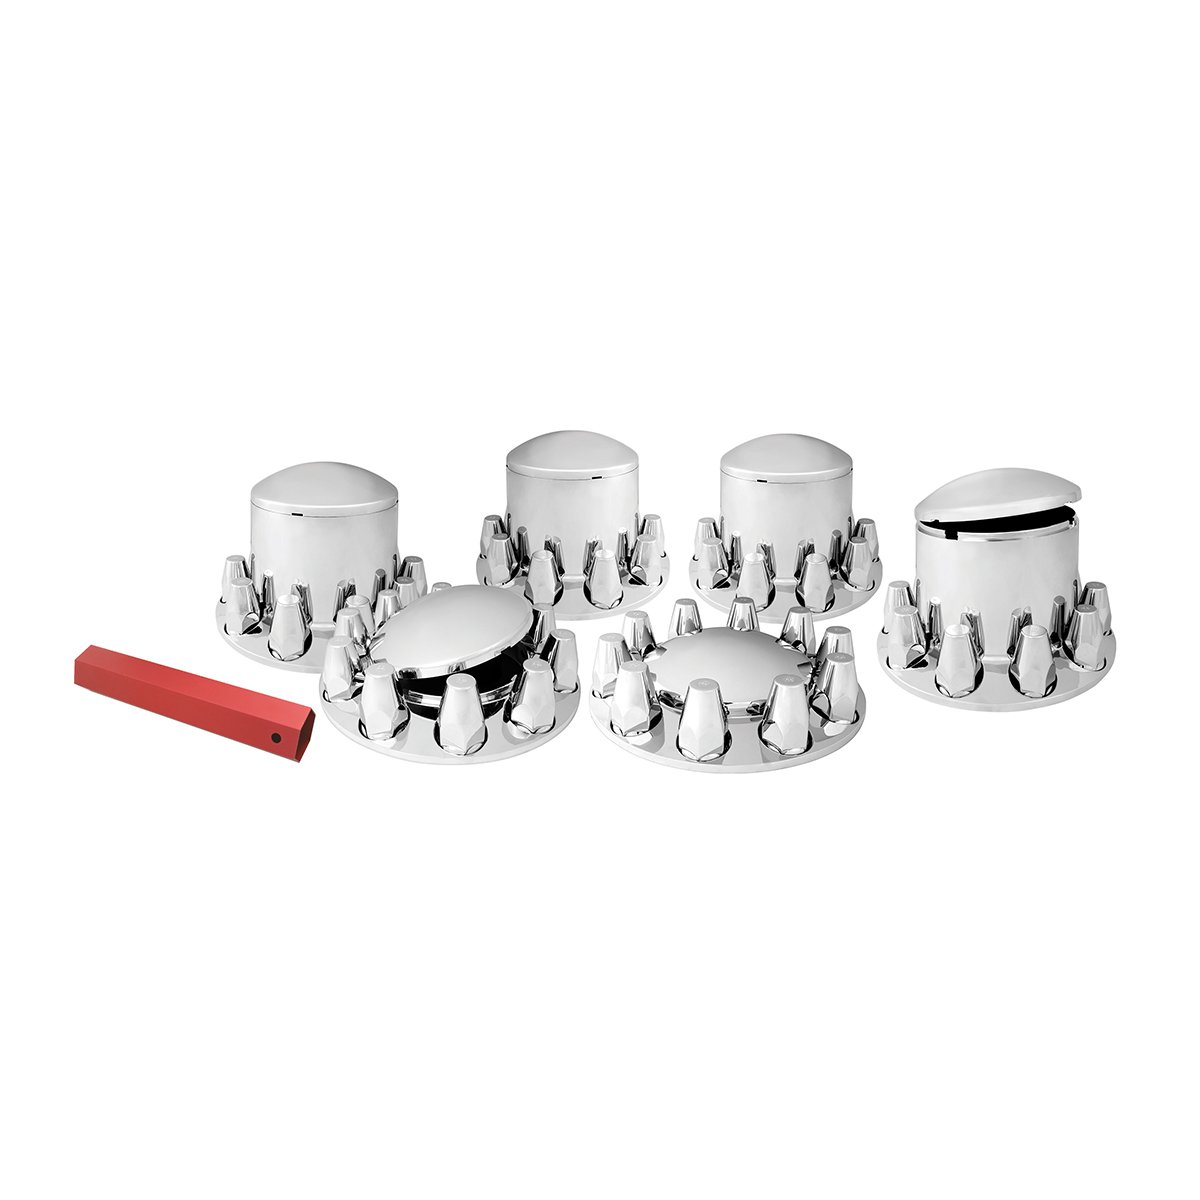 Grand General 40234 Chrome Plastic Complete ABS Axle Cover Set (2 Front and 4 Rear with Standard Hub Caps and Push-On Lug Nut Covers for Trucks)